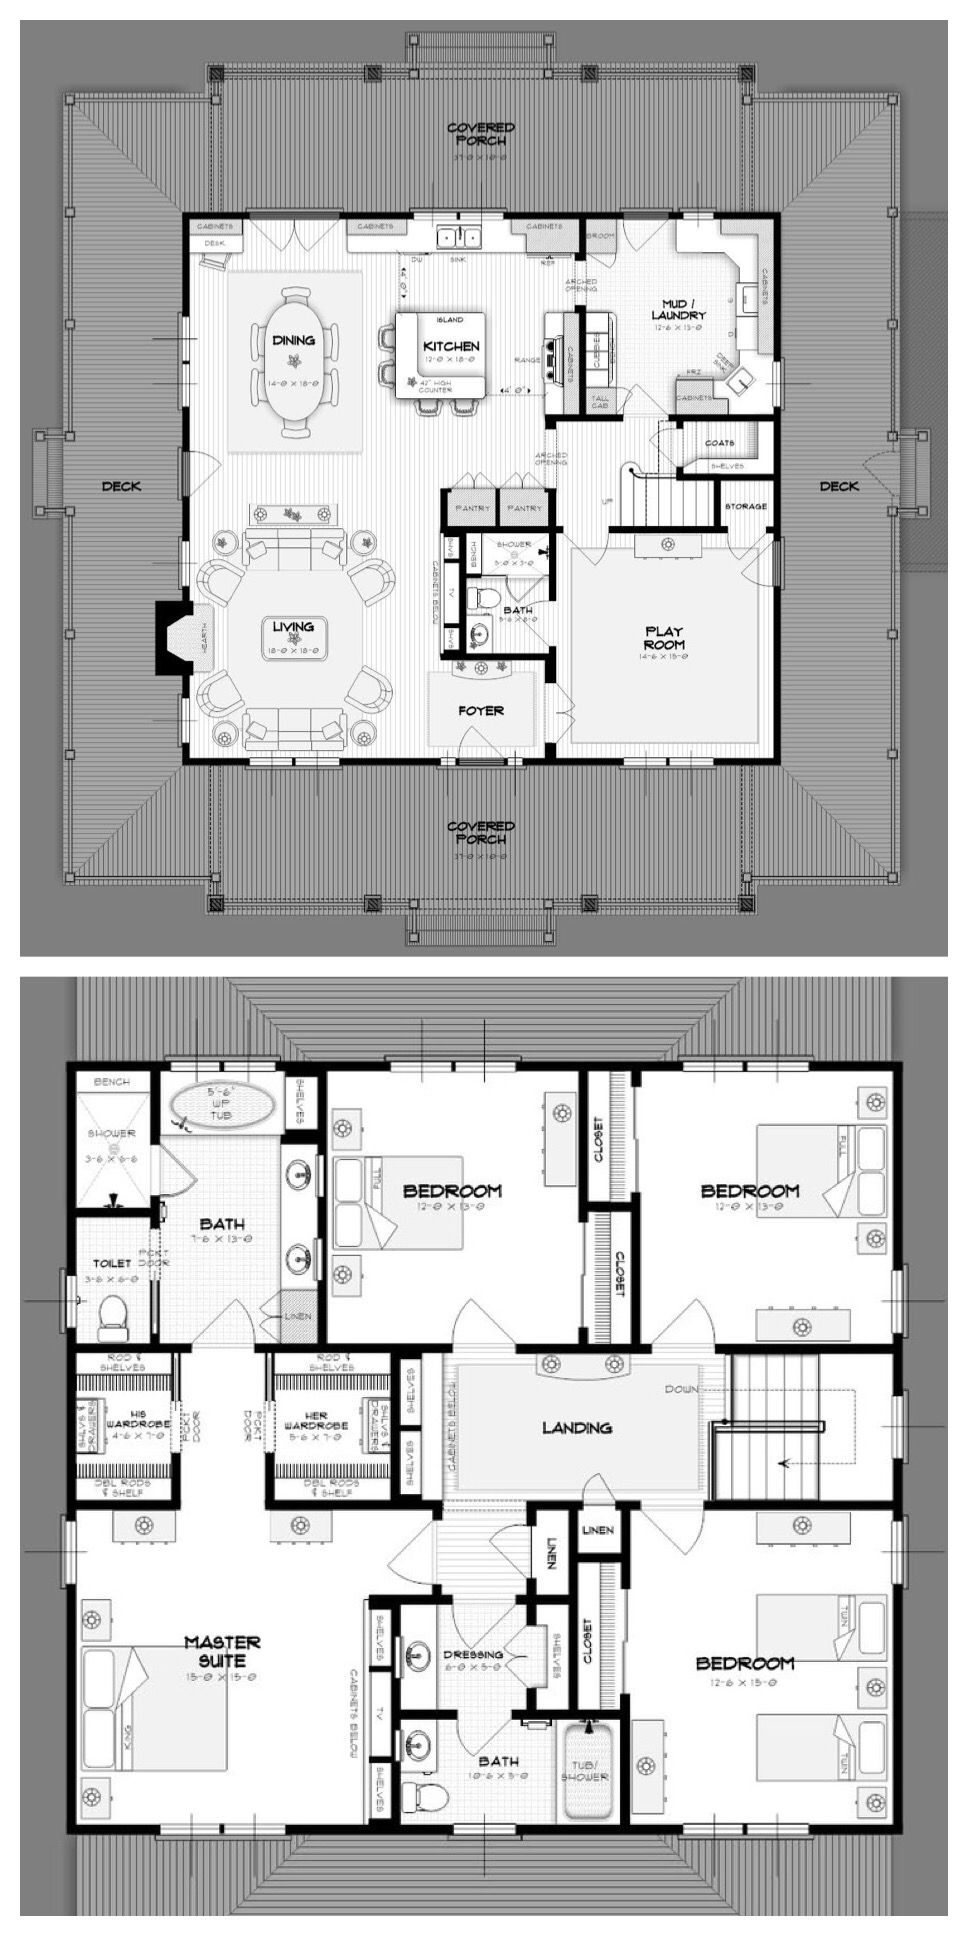 Practical Family Floor Plan Open Layout Mud Room Lots Of Storage Wraparound Porch Fireplace Fo Square House Plans Square Floor Plans House Plans Farmhouse